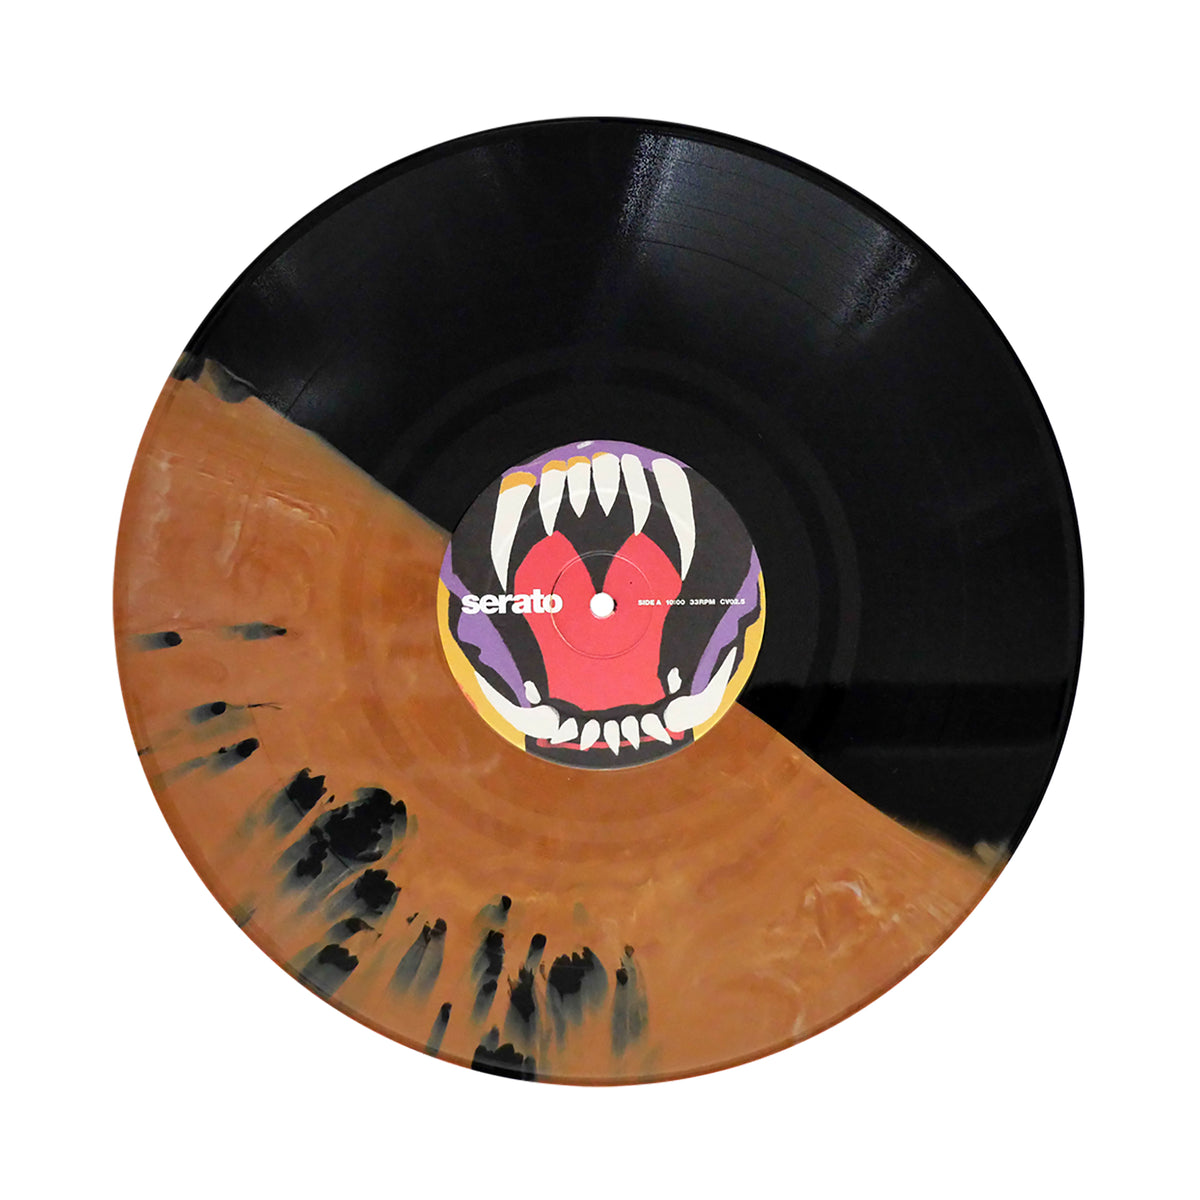 Serato: Cursed CV 2 - Fangs Under The Full Moon! (Colored Vinyl) Vinyl 2LP